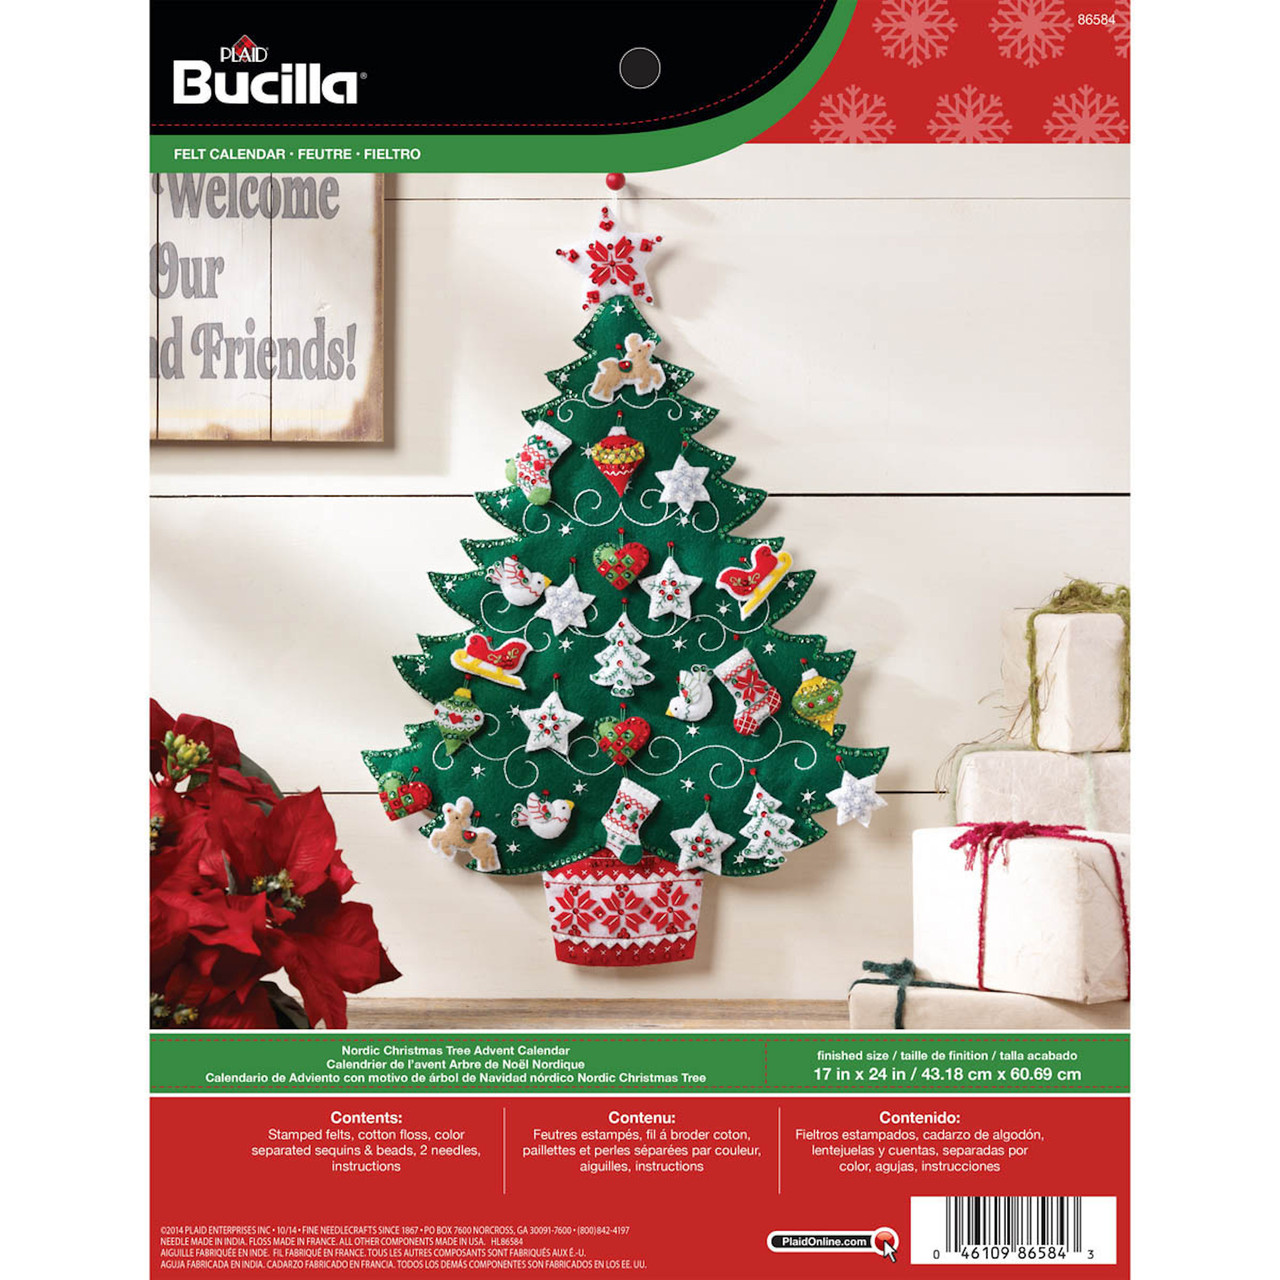 Plaid / Bucilla -  Nordic Christmas Tree Advent Calendar Wall Hanging